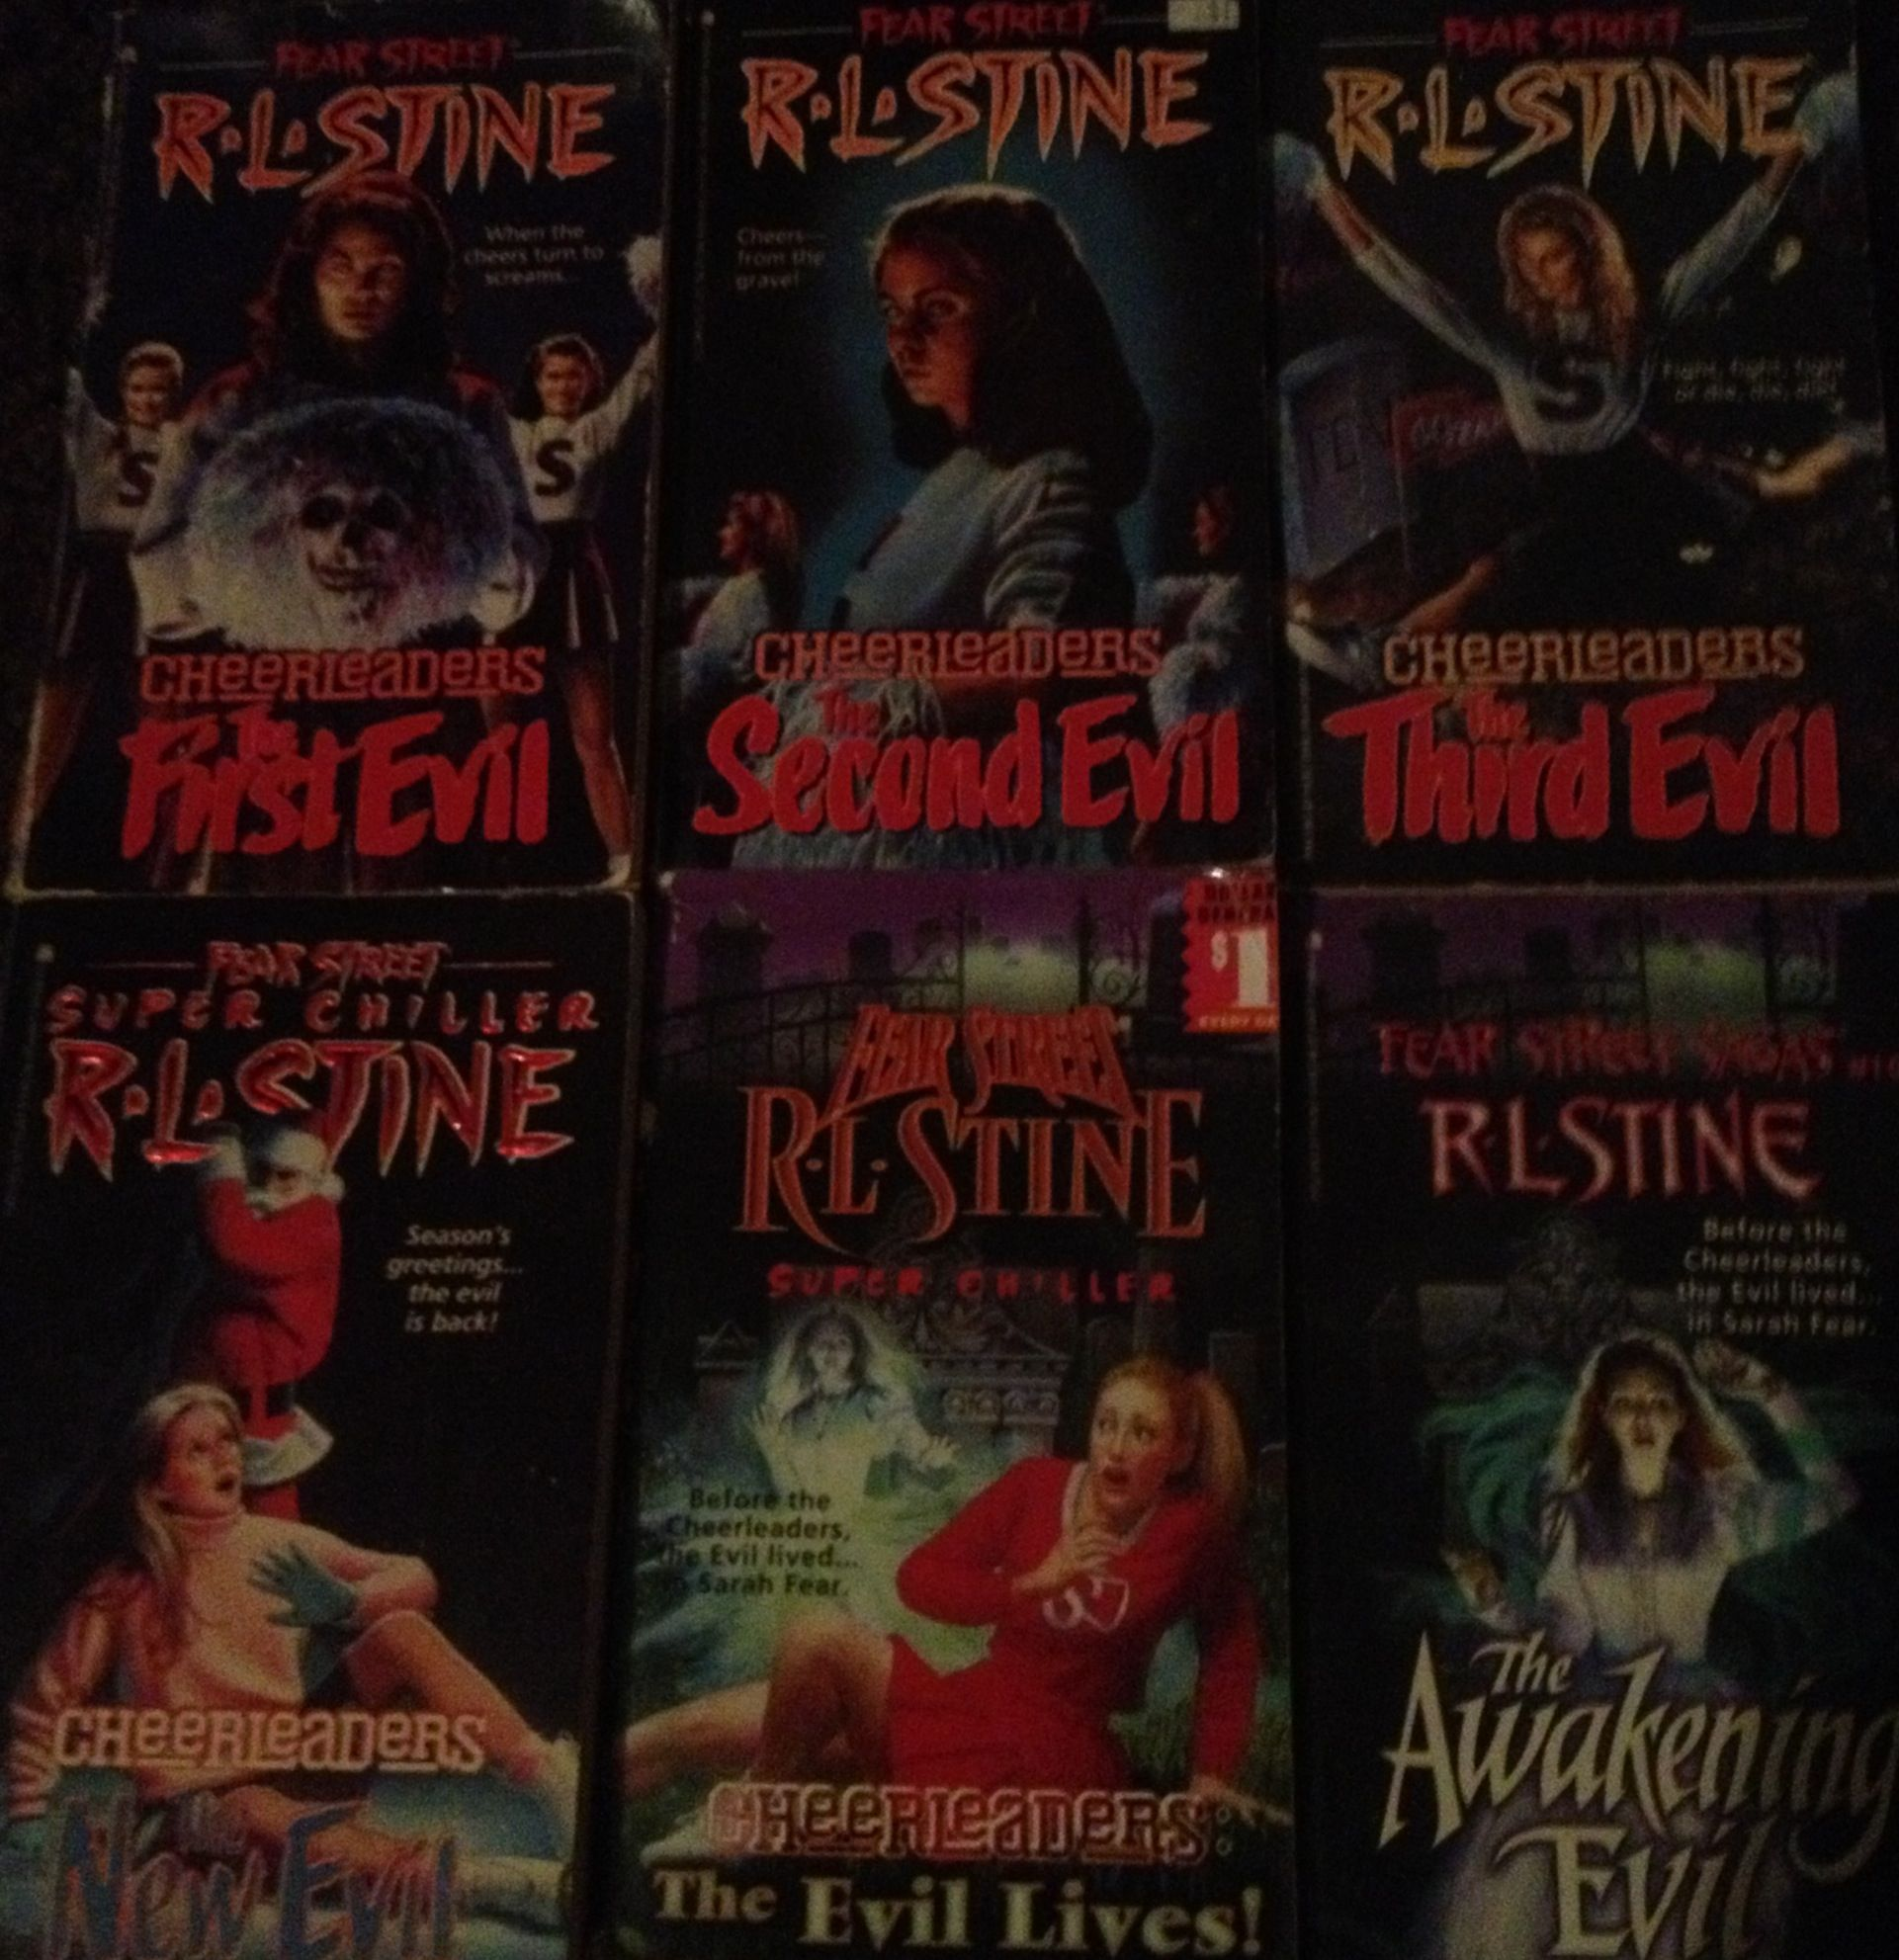 Whole Fear Street Cheerleaders Series : R.L. Stine | Fear Street ...